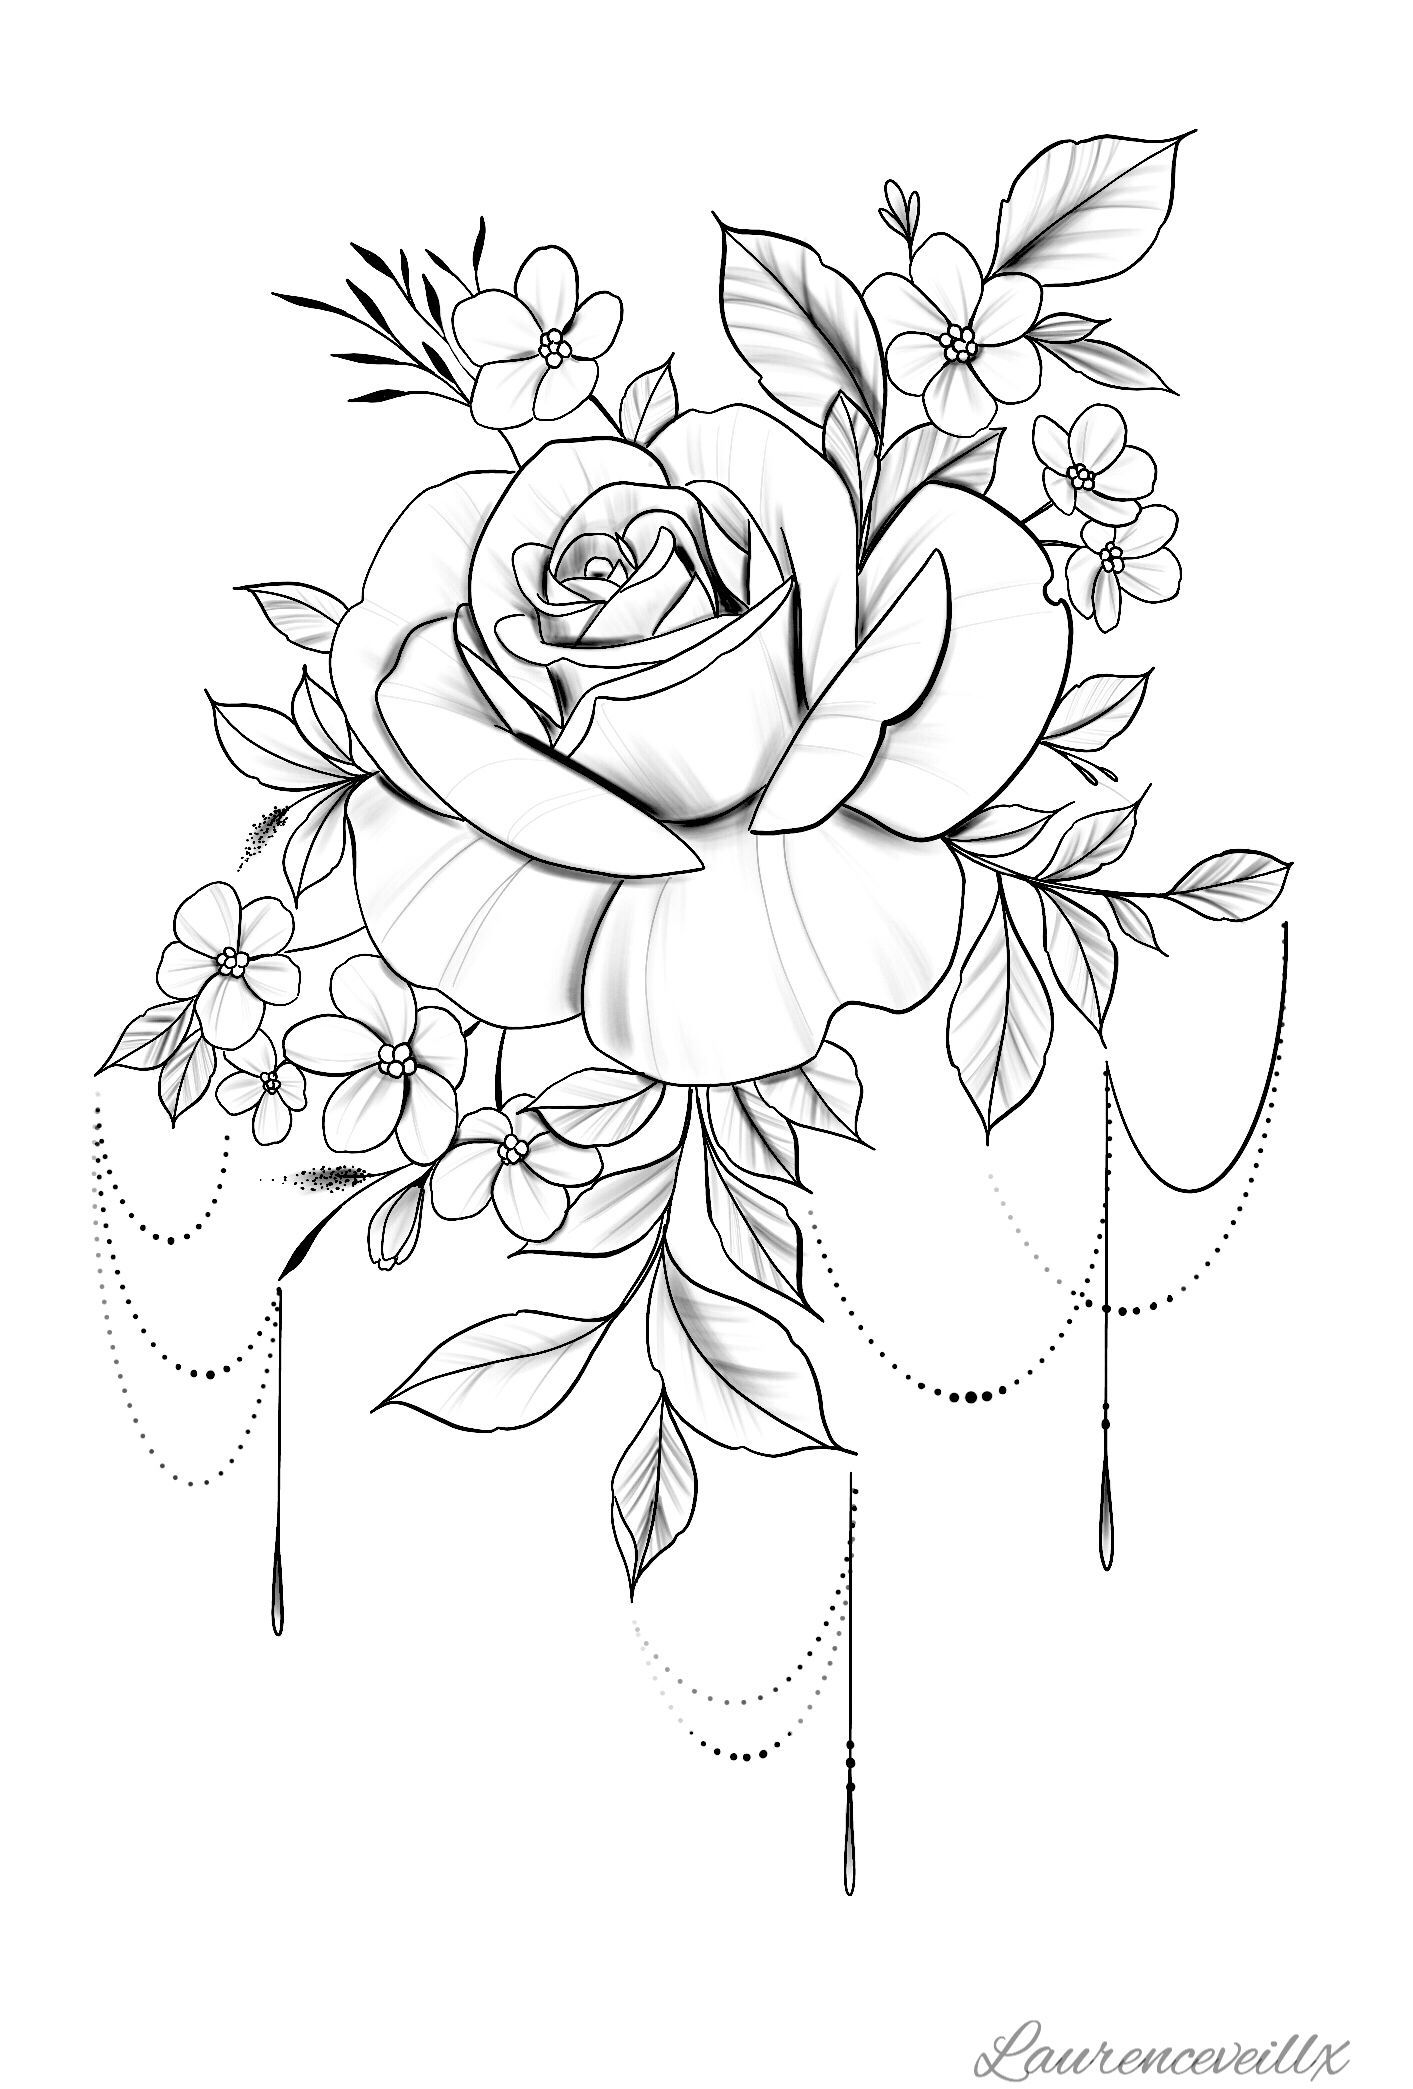 Tattoo Rose Flower Tattoo Design Available Instant Download Etsy